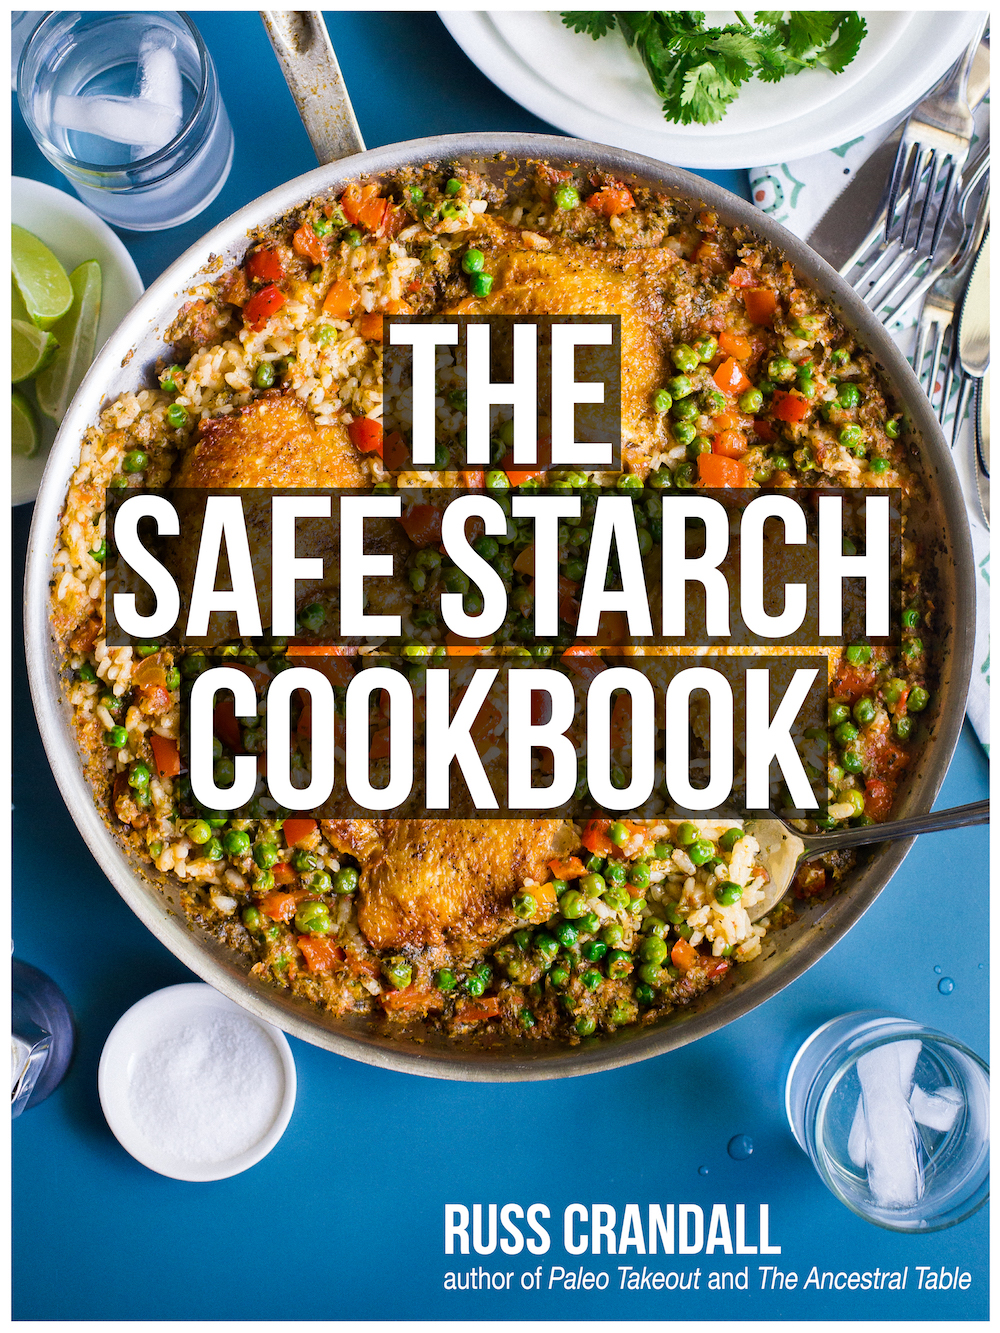 The Safe Starch Cookbook – 2017 Edition!